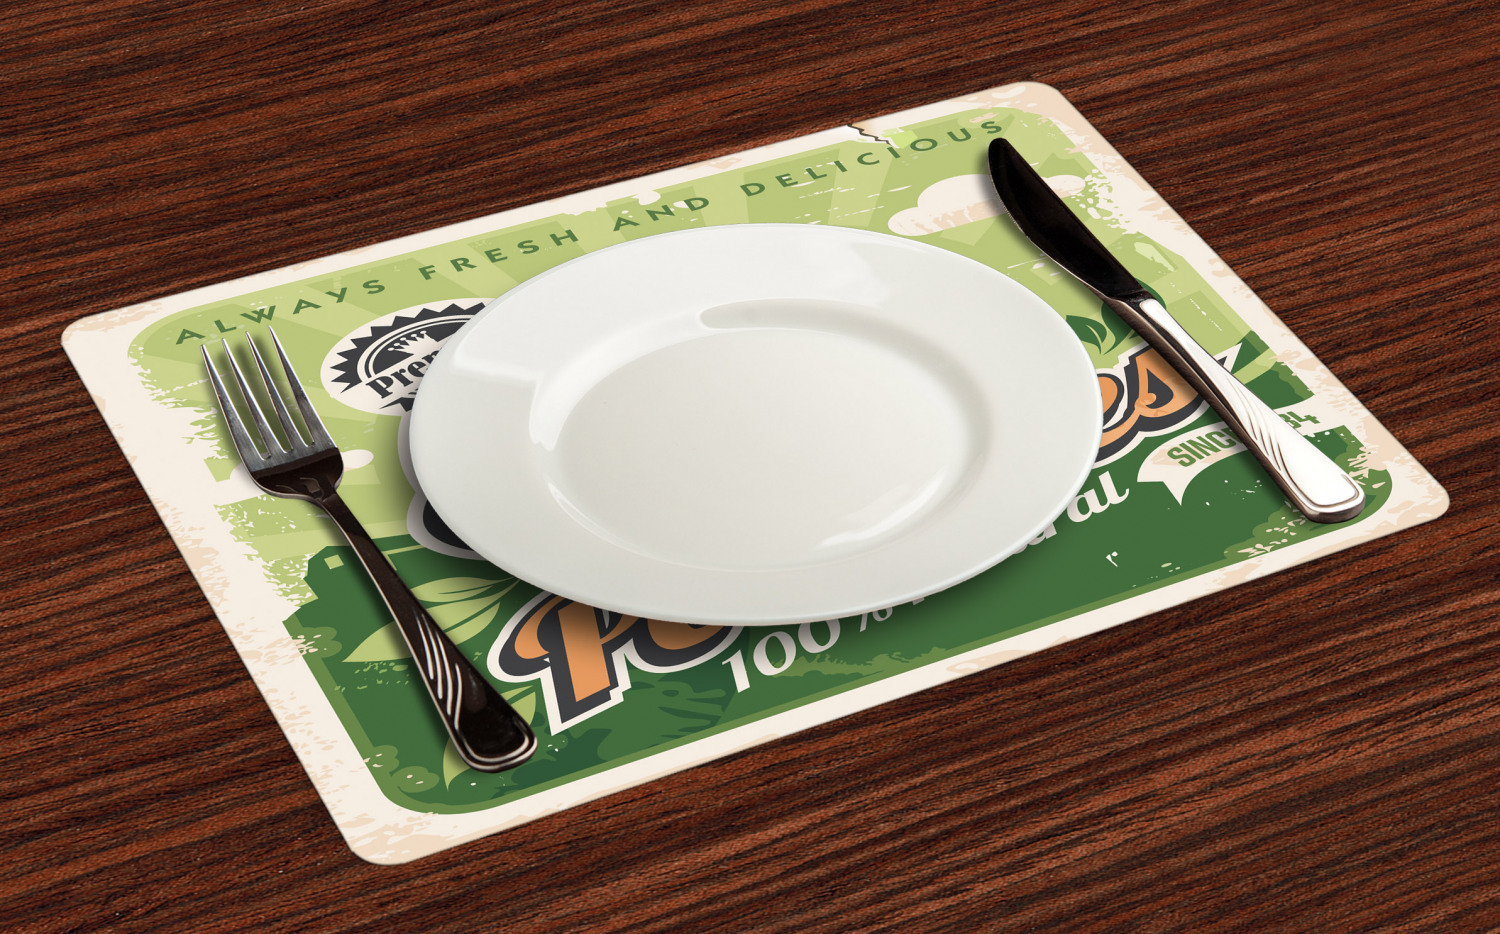 Ambesonne-Fabric-Place-Mats-Set-of-4-Placemats-for-Dining-Room-and-Kitchen-Table thumbnail 221